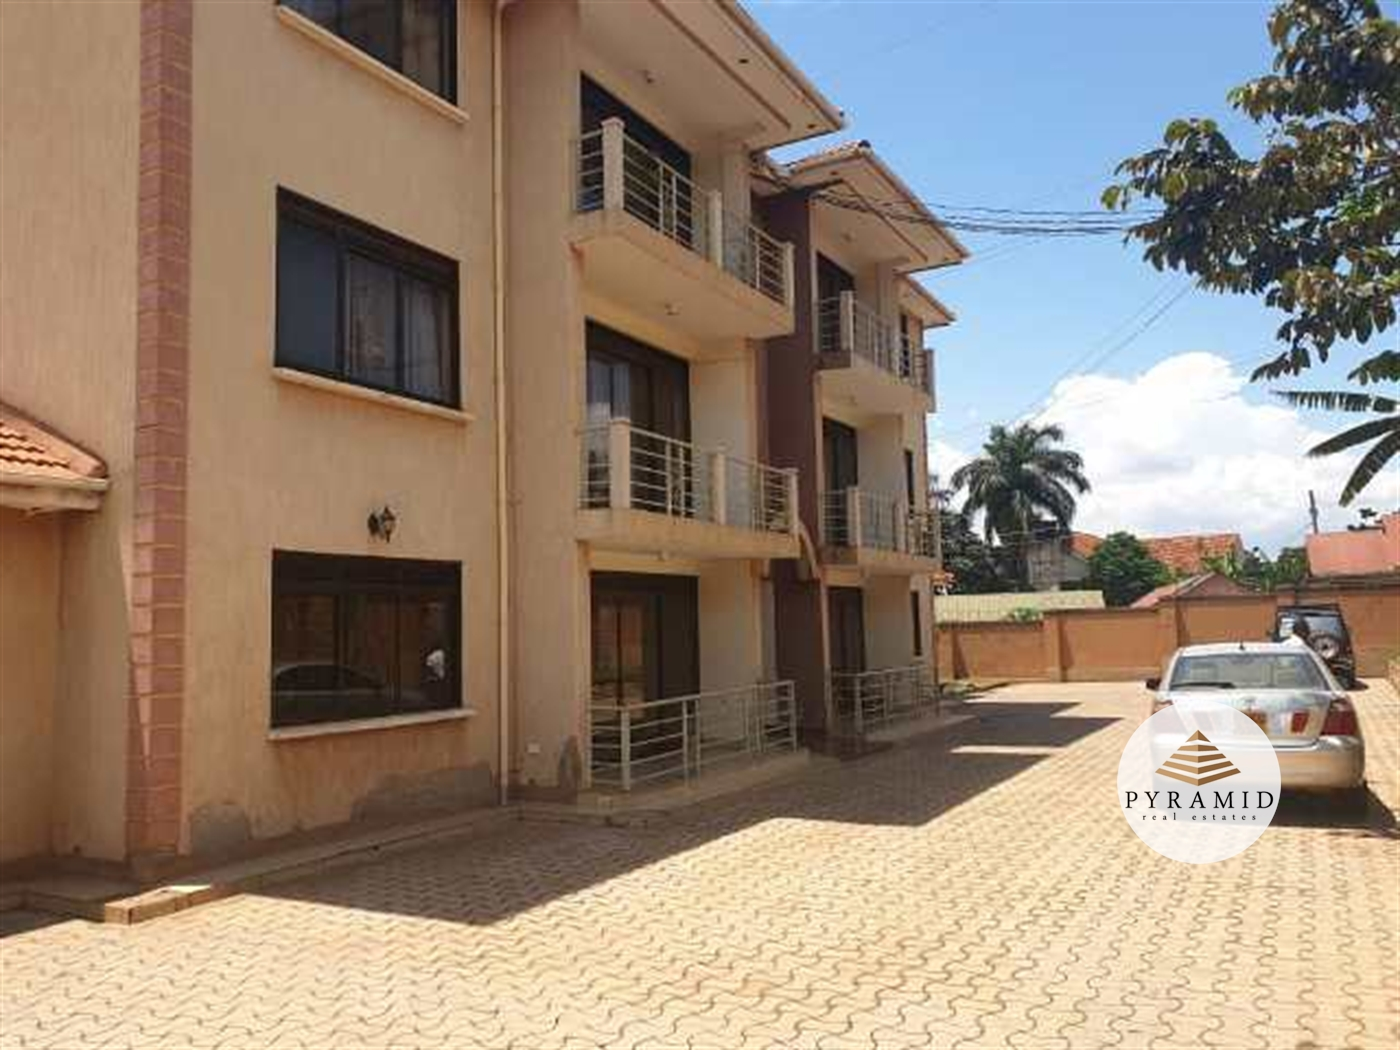 Storyed house for rent in Naguru Kampala